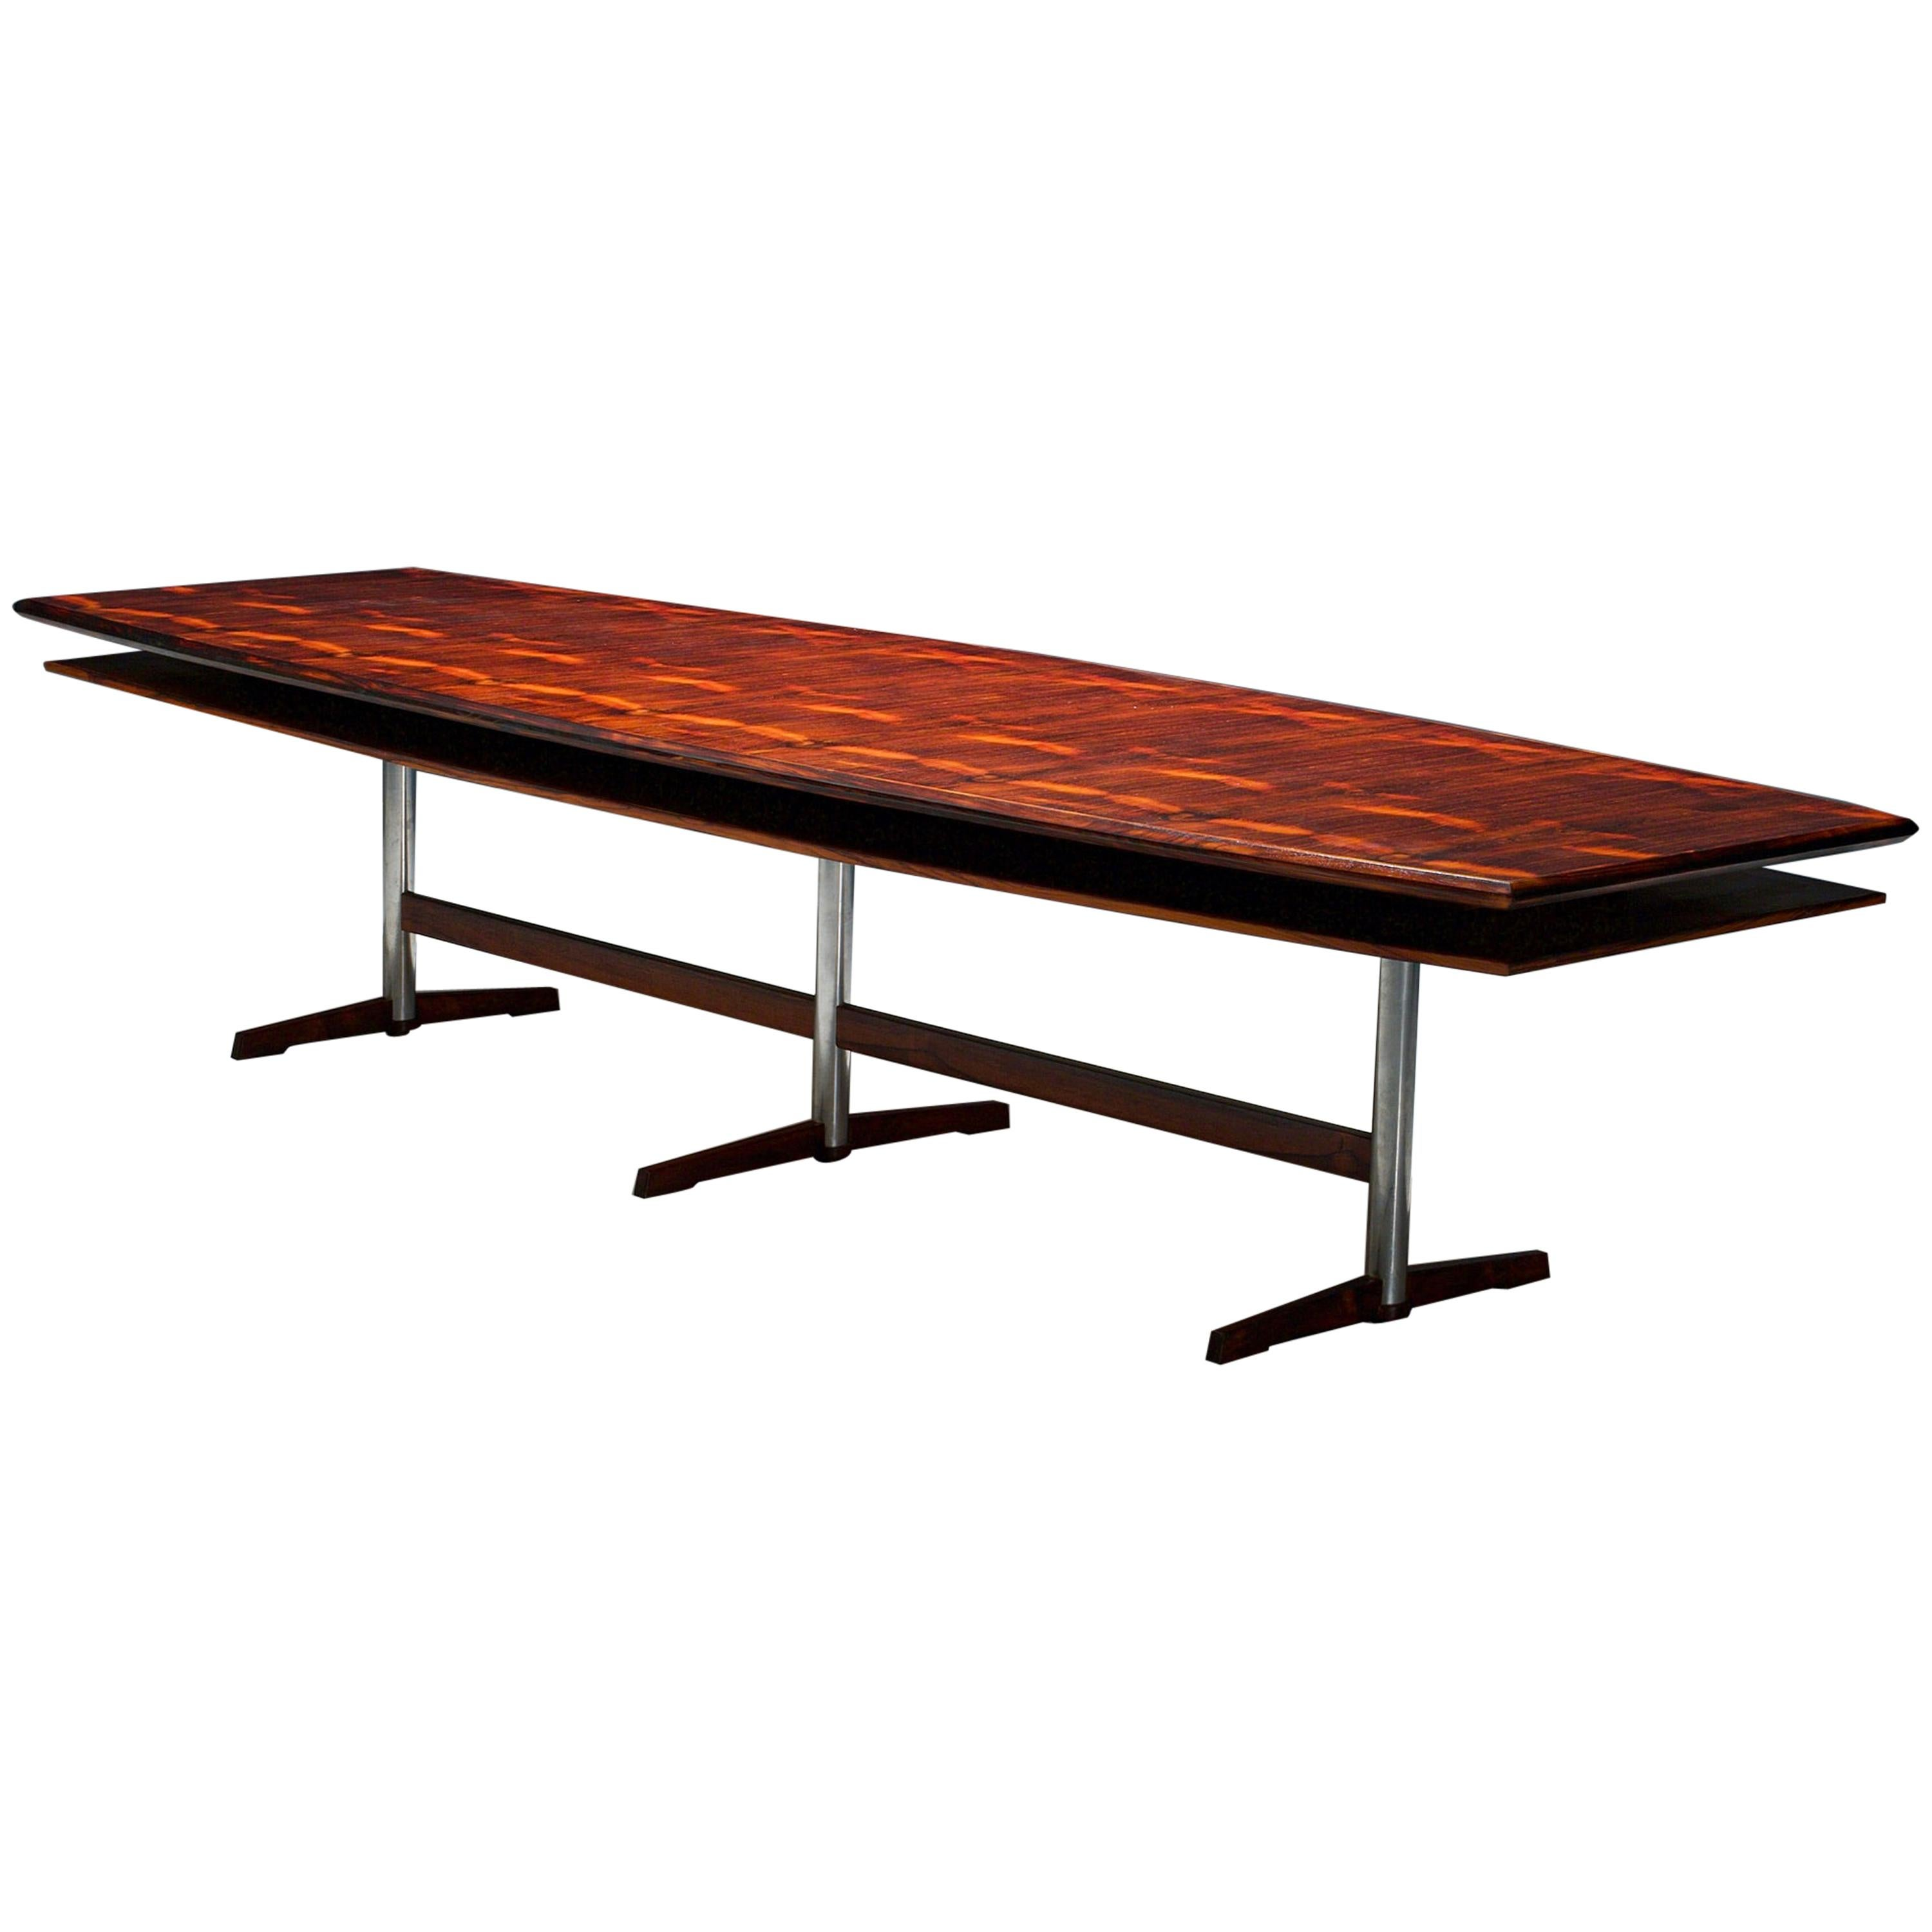 Boat-shaped Dining- / Conference Table in Rosewood and Metal, Denmark, 1960s